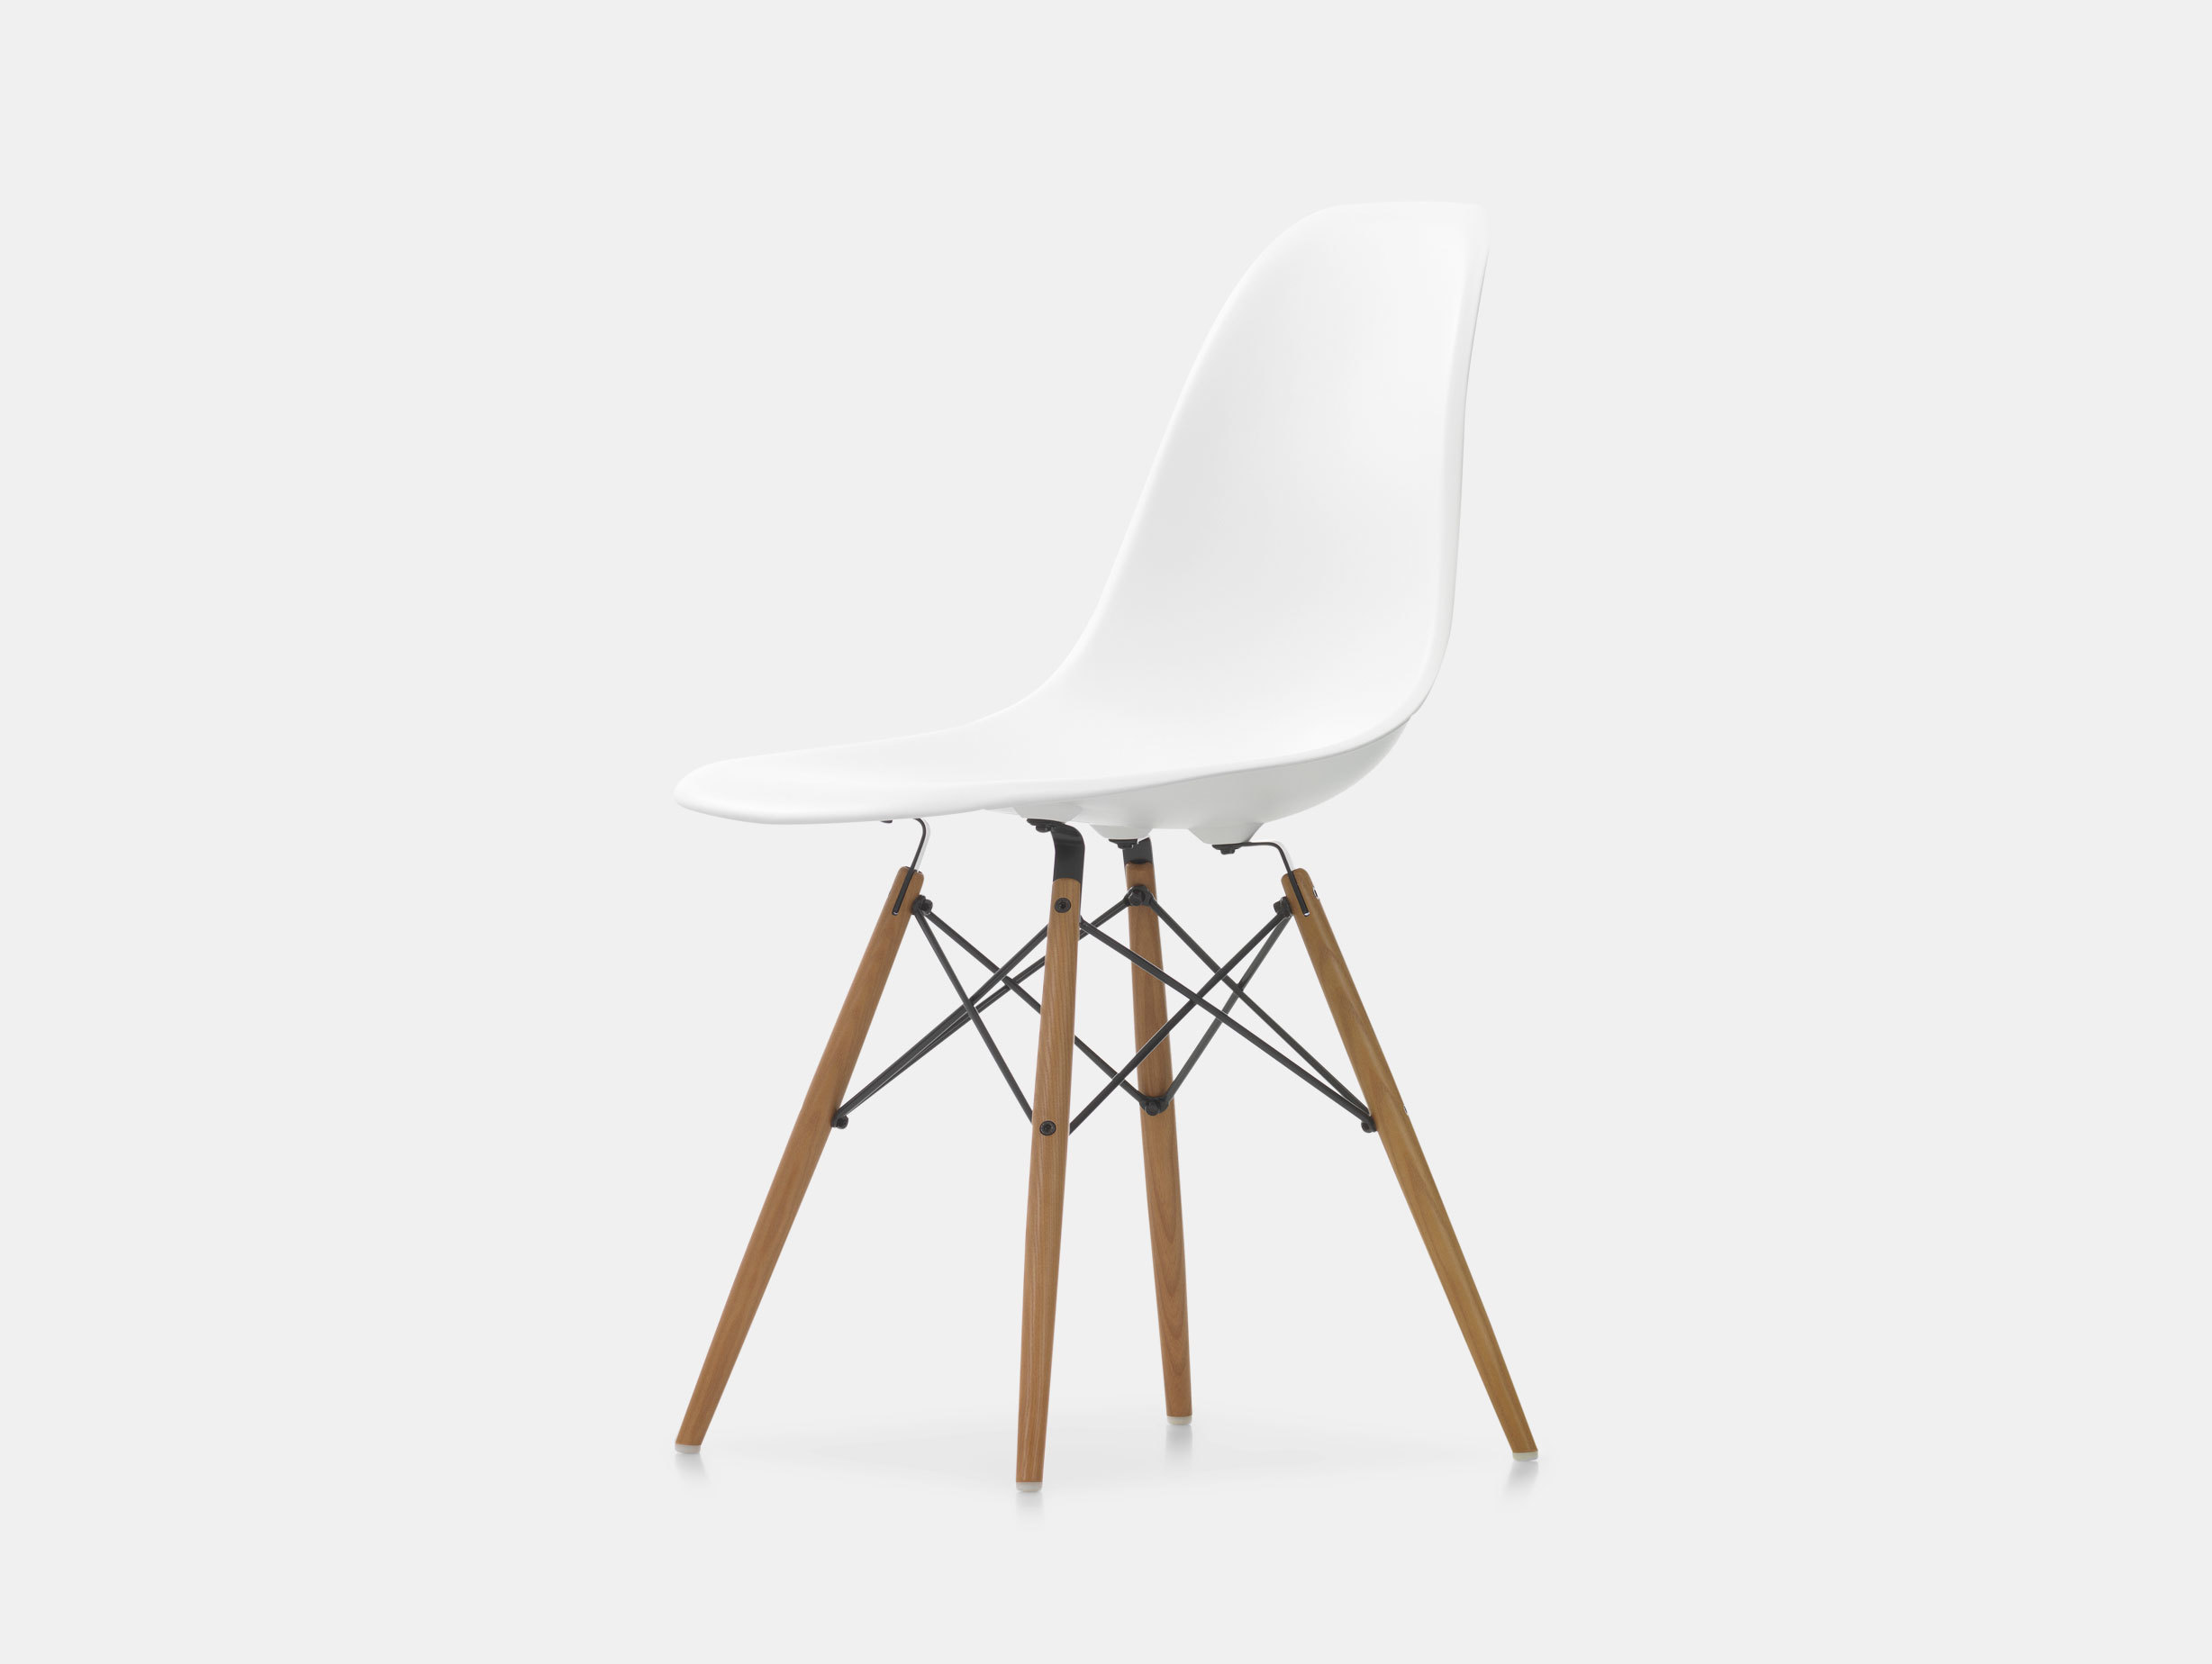 Eames DSW Plastic Side Chair image 3